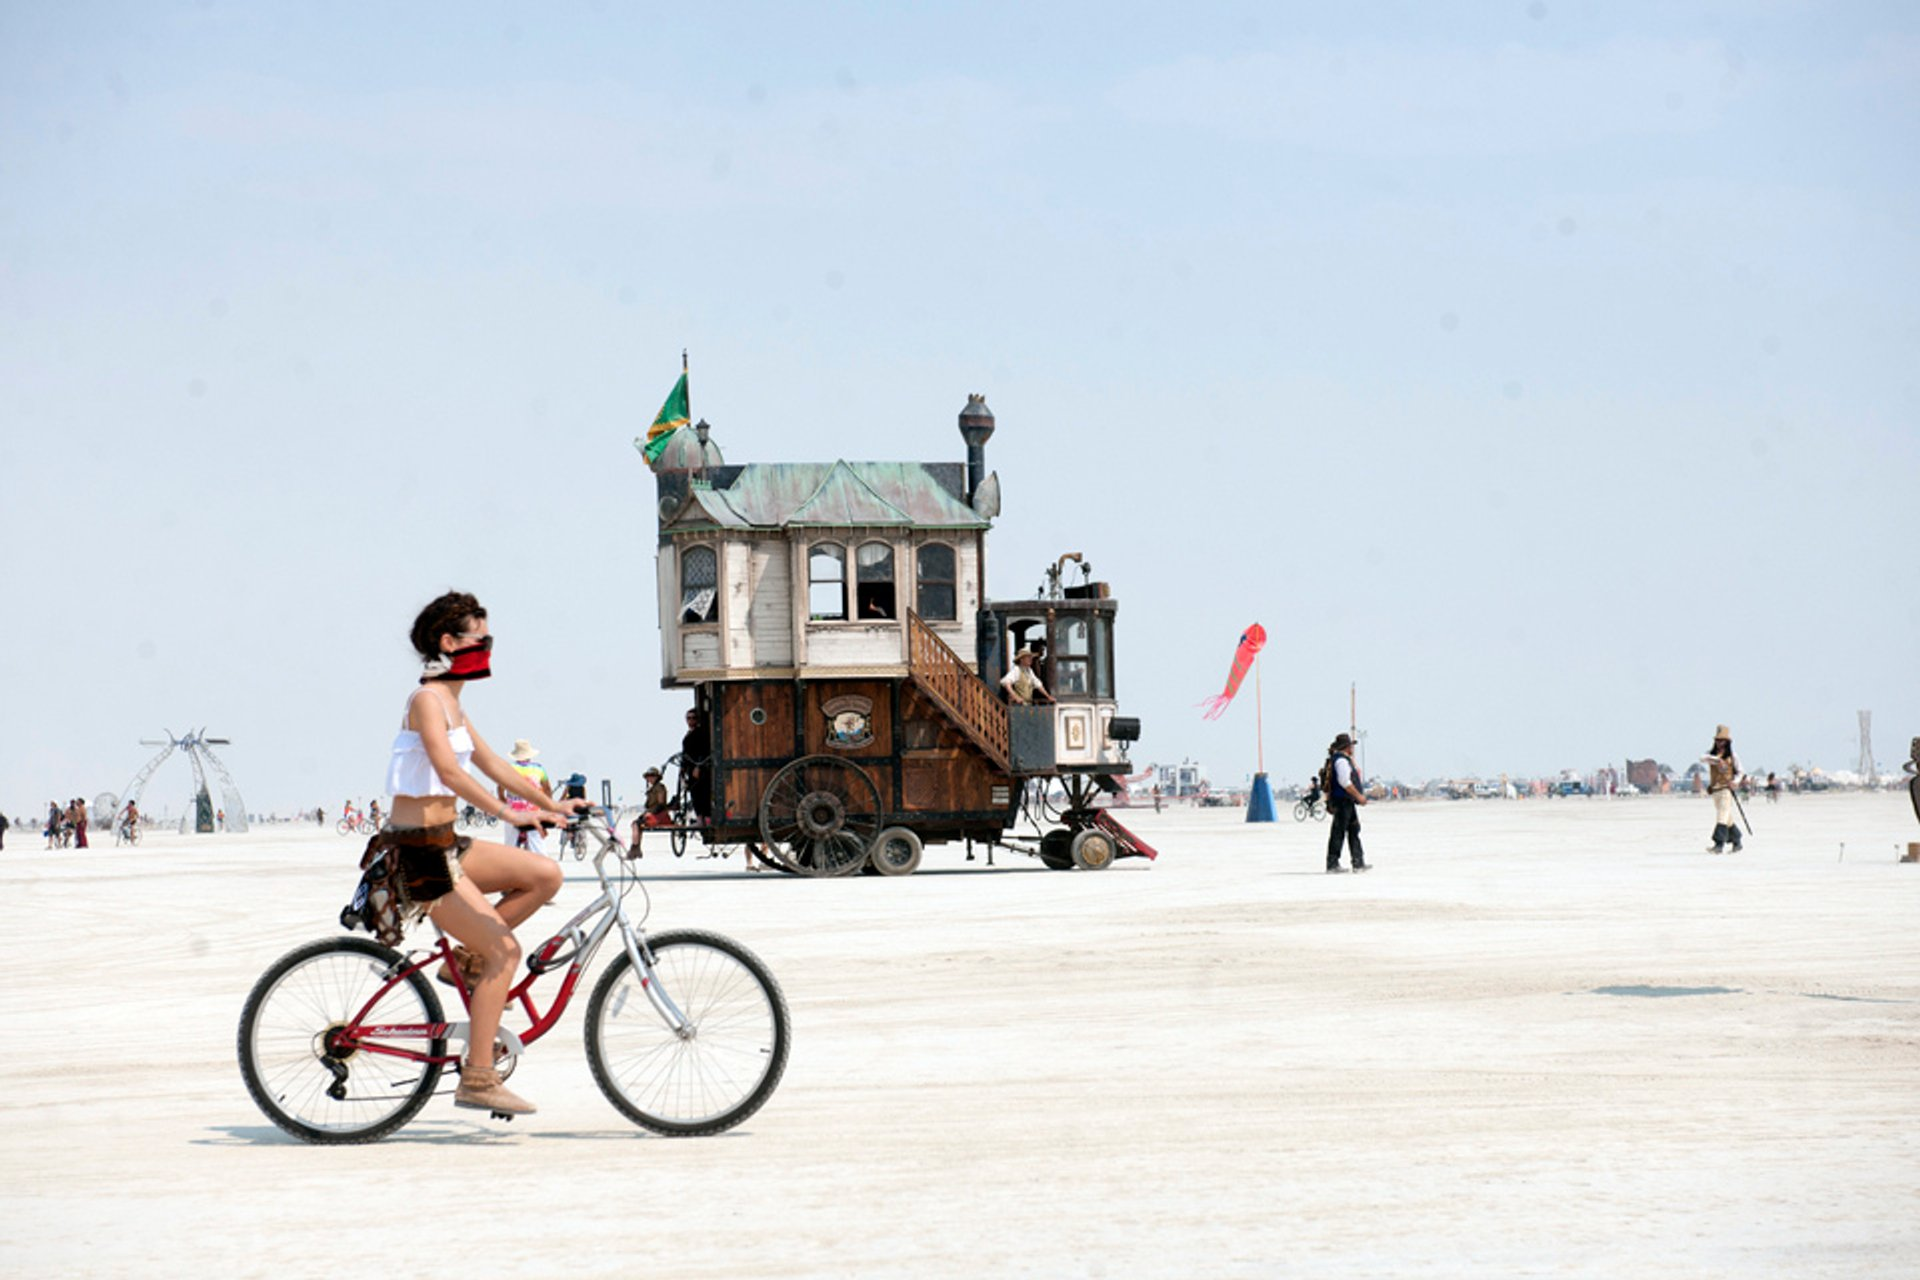 Best time to see Burning Man 2020